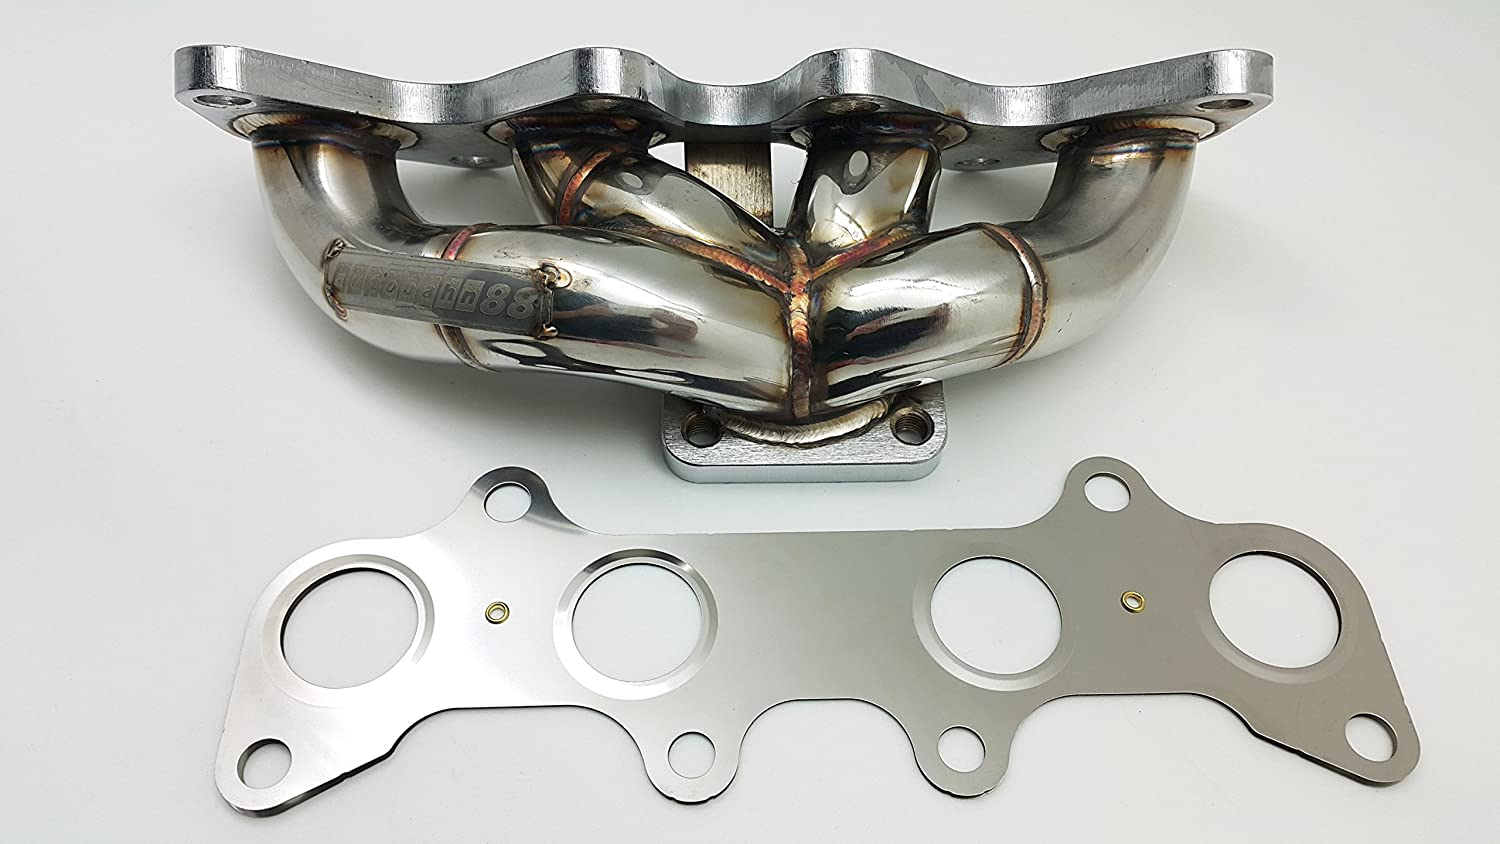 fits for Toyota Starlet GT Glanza P82 EP91 CT9 Turbo 4E-FTE Autobahn88 Stainless Steel Exhaust Dump Turbo Outlet